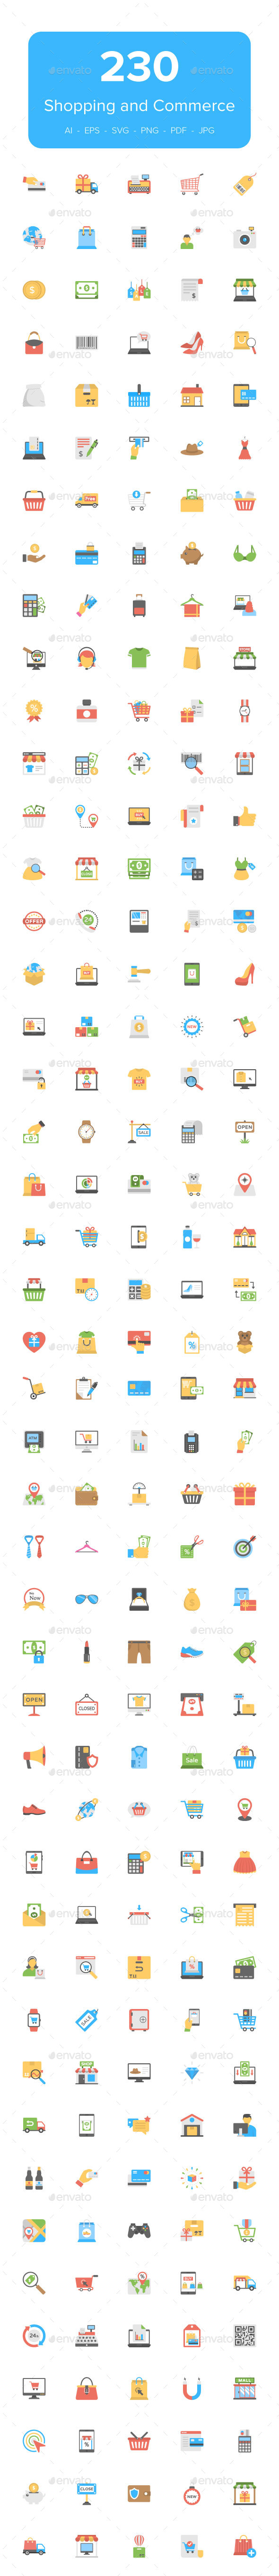 GraphicRiver 230 Flat Shopping and Commerce Icons 21088586